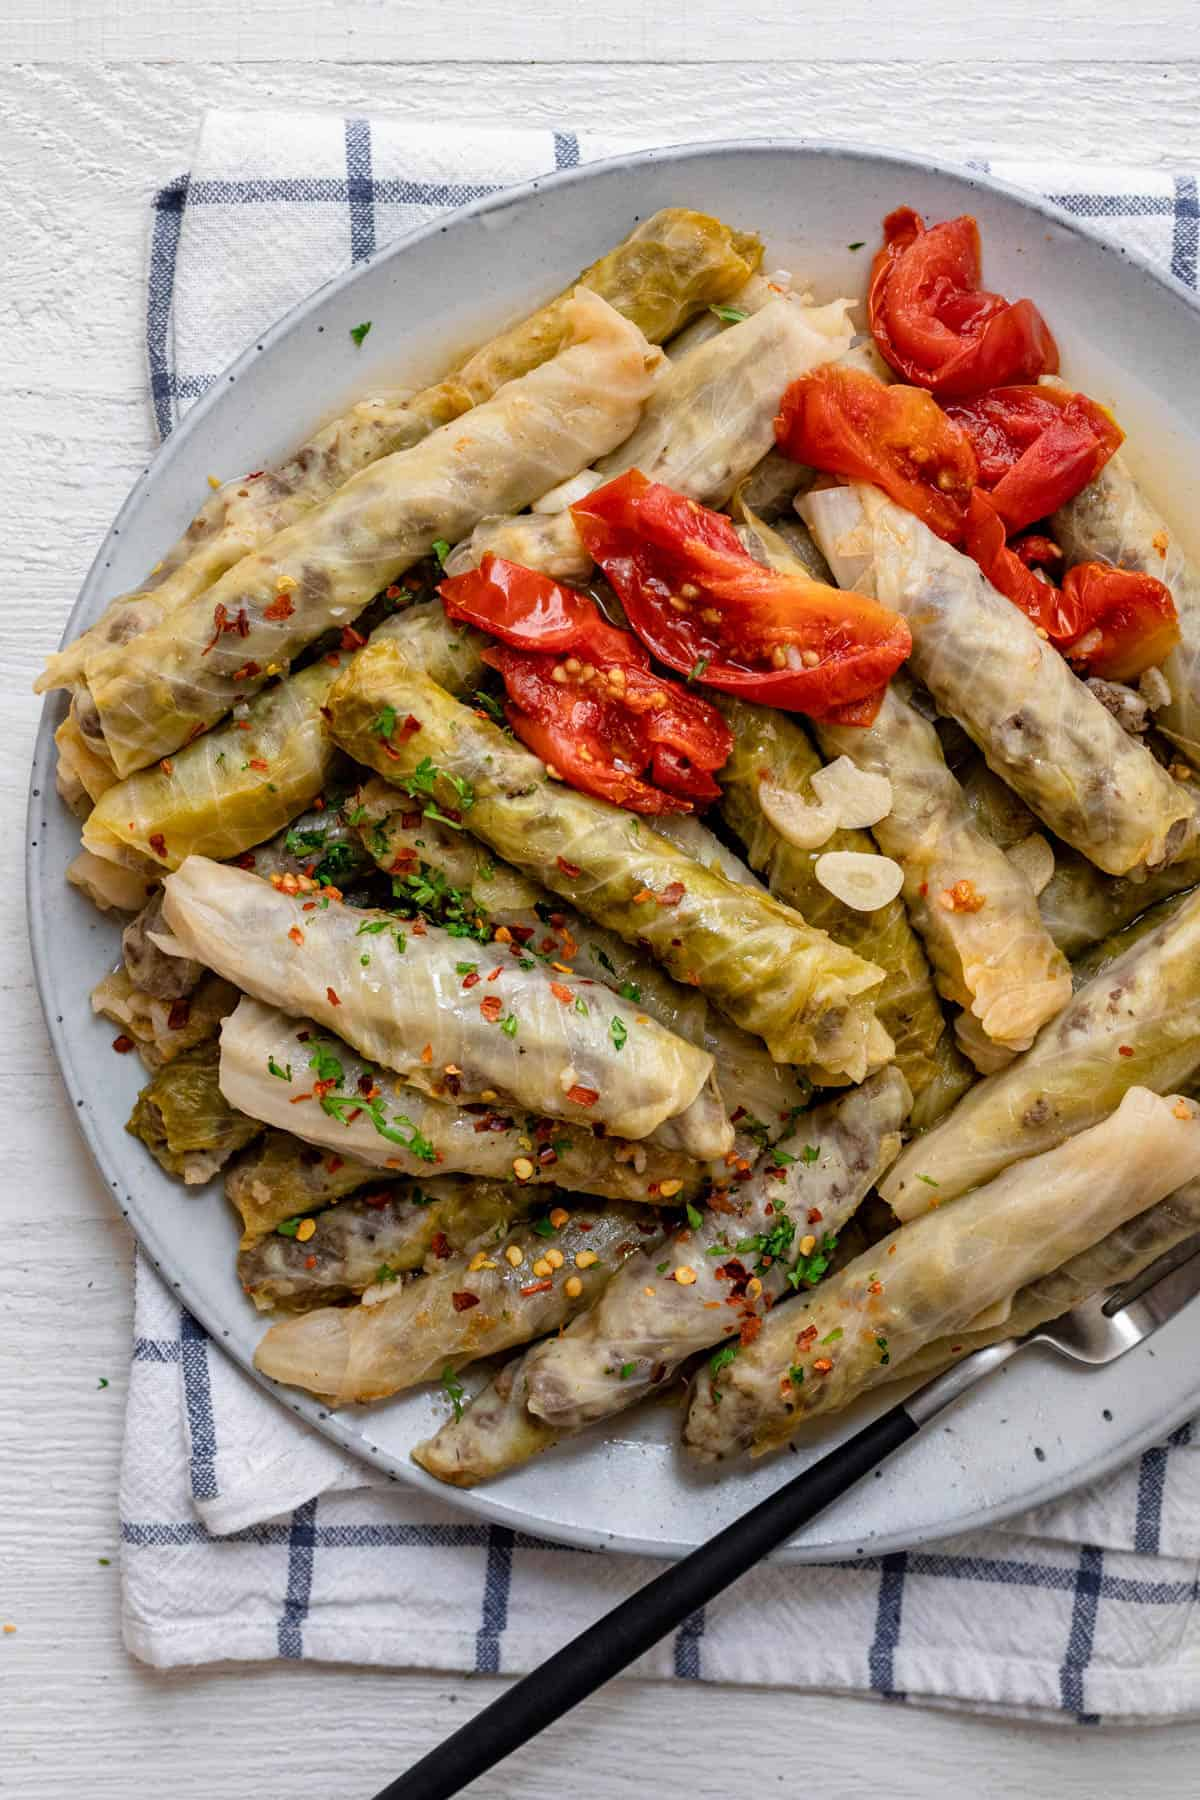 Plate of stuffed cabbage rolls - lebanese style served with lmone slices